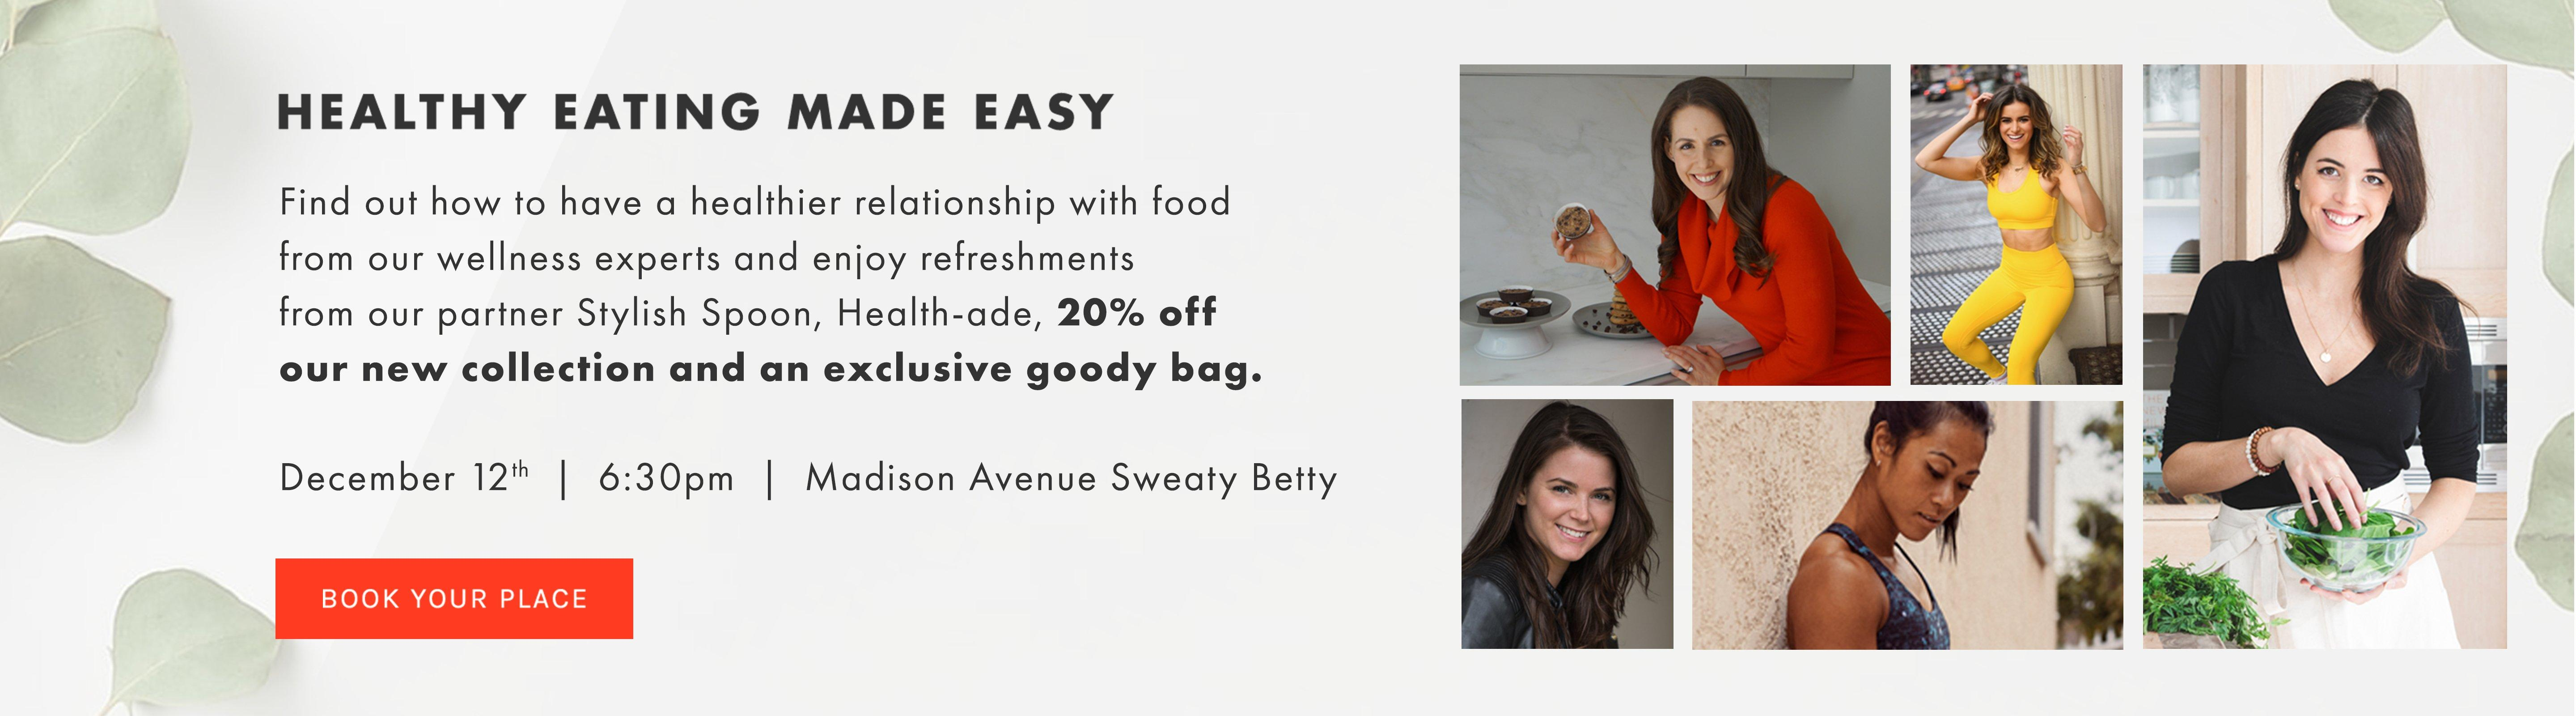 Healthy Eating Made Easy. December 12th, 6:30pm. Sweaty Betty Madison Avenue.